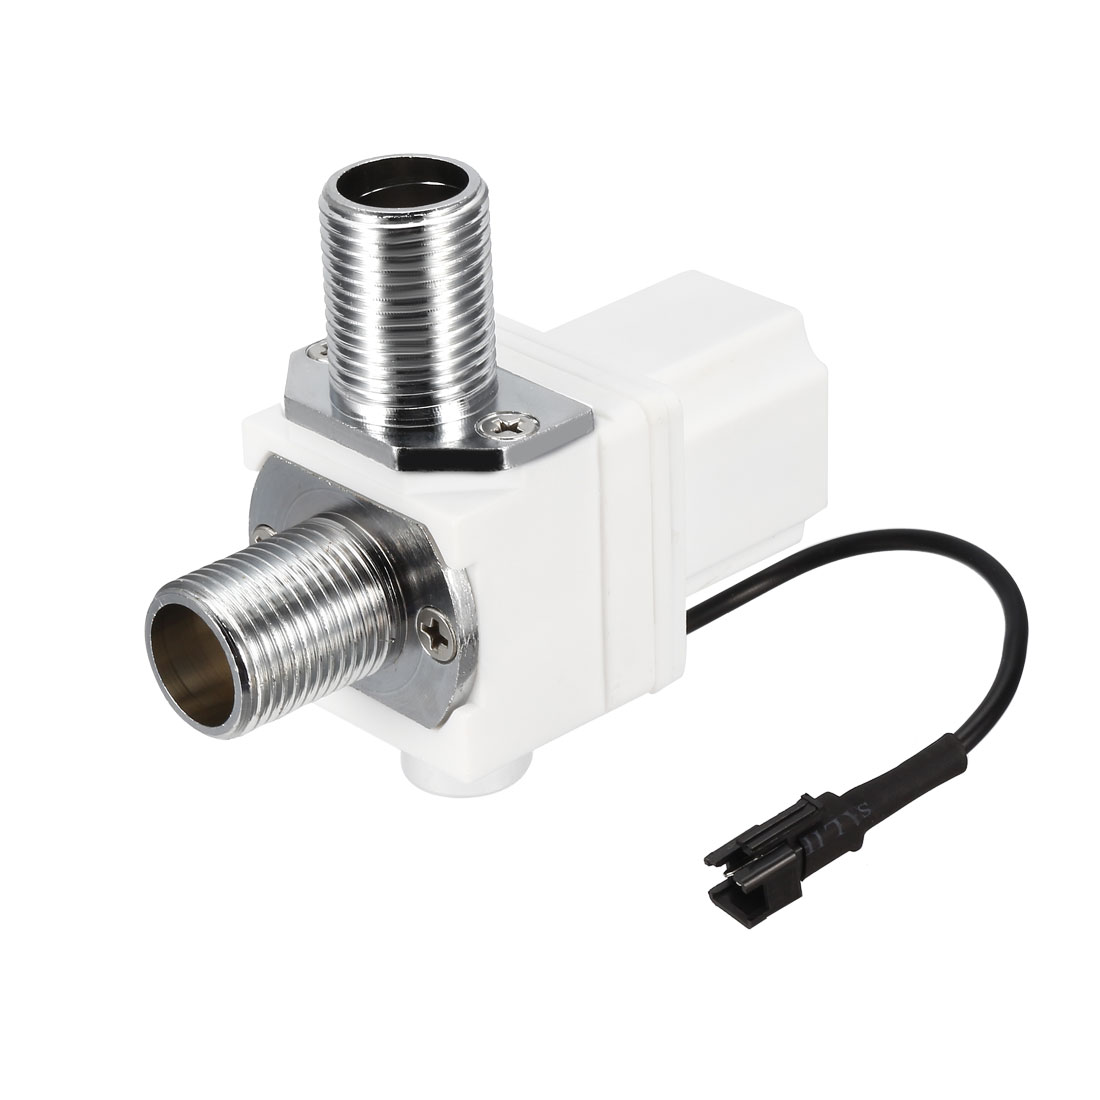 Pulse Solenoid Valve G1/2 DC4.5V Vertical Male Thread Valves with Filter